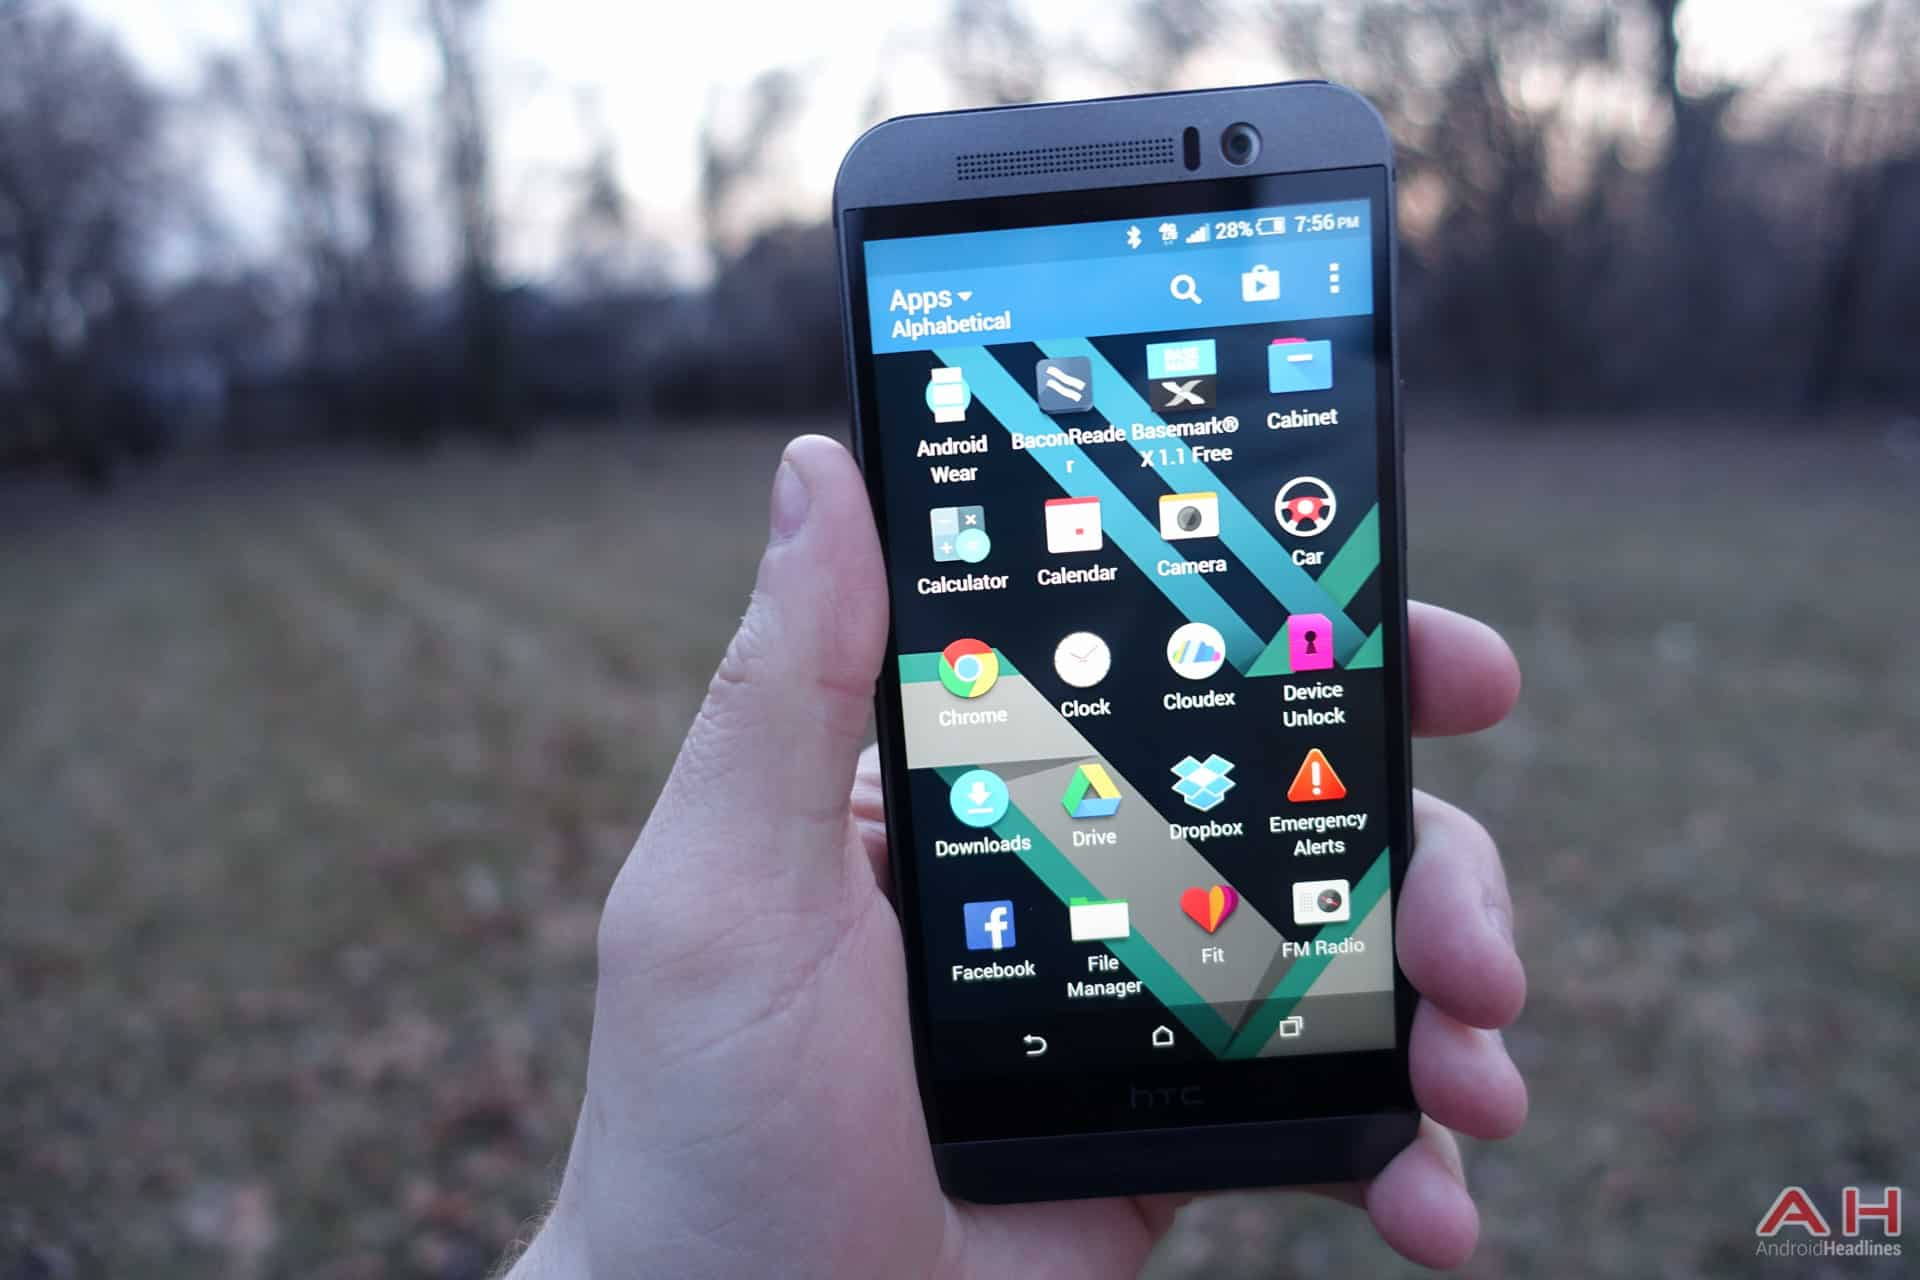 HTC-One-M9-Review-AH-19